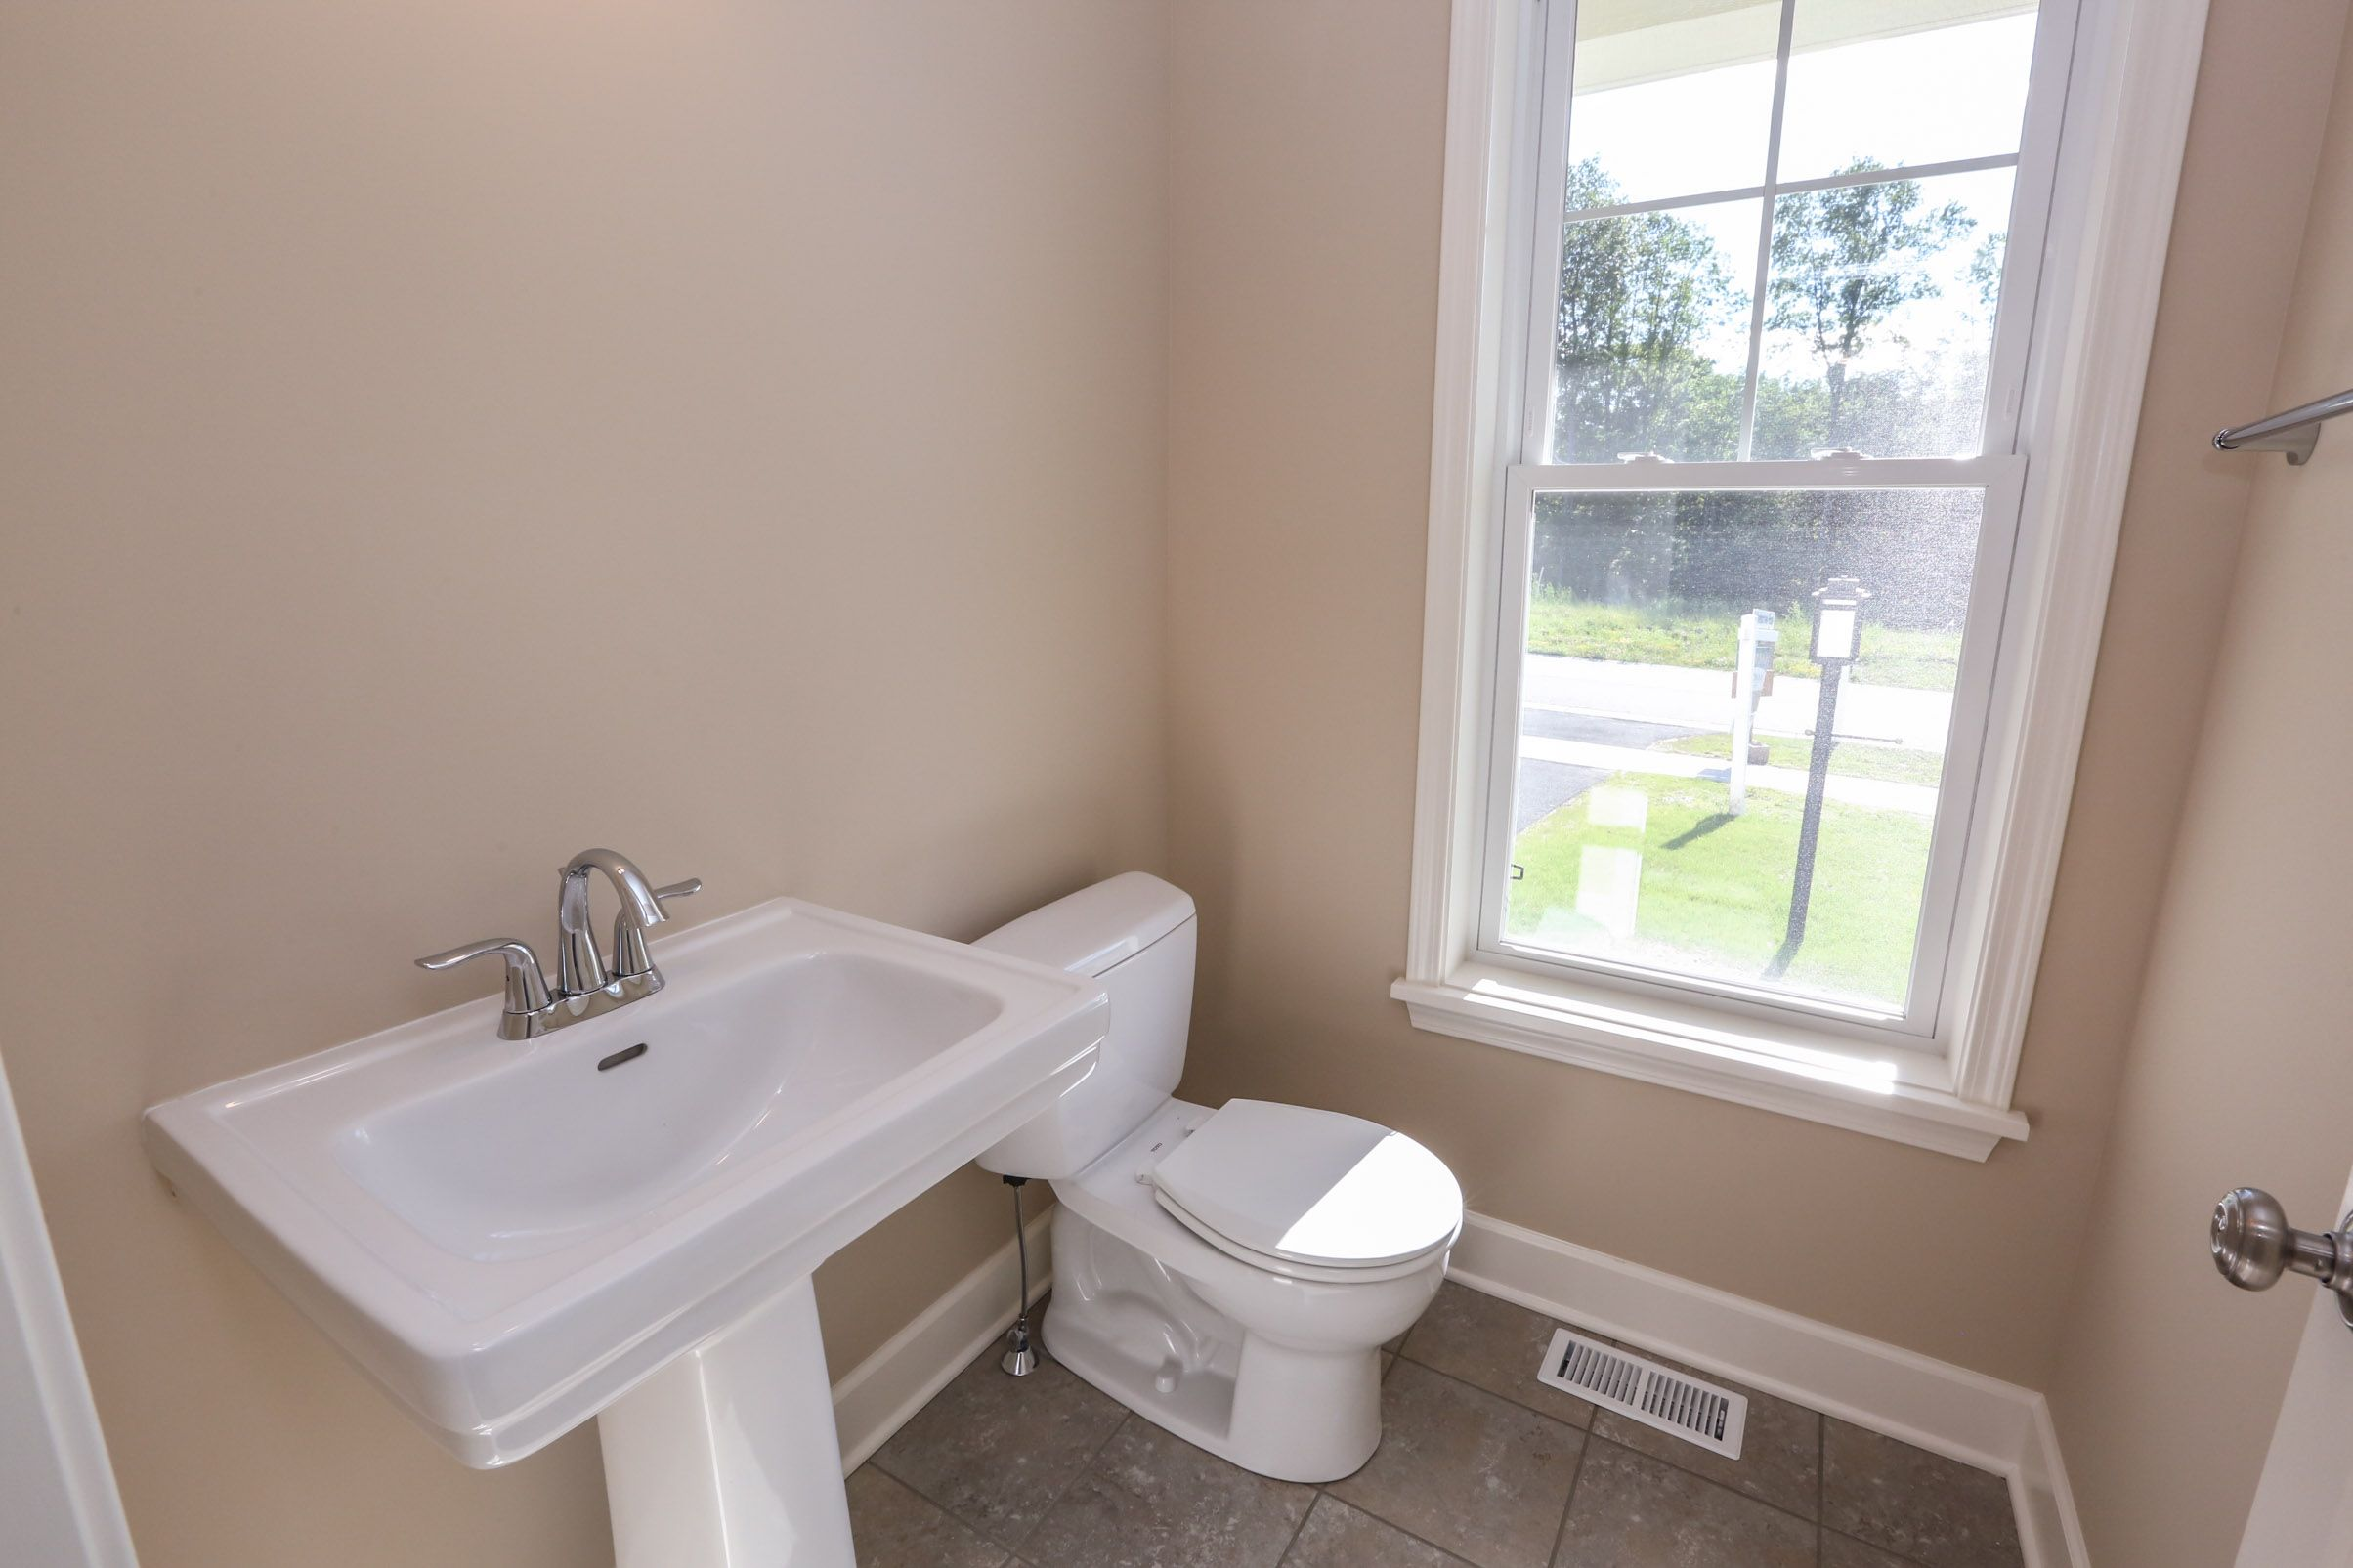 Bathroom featured in The Brentwood By Riedman Homes in Rochester, NY